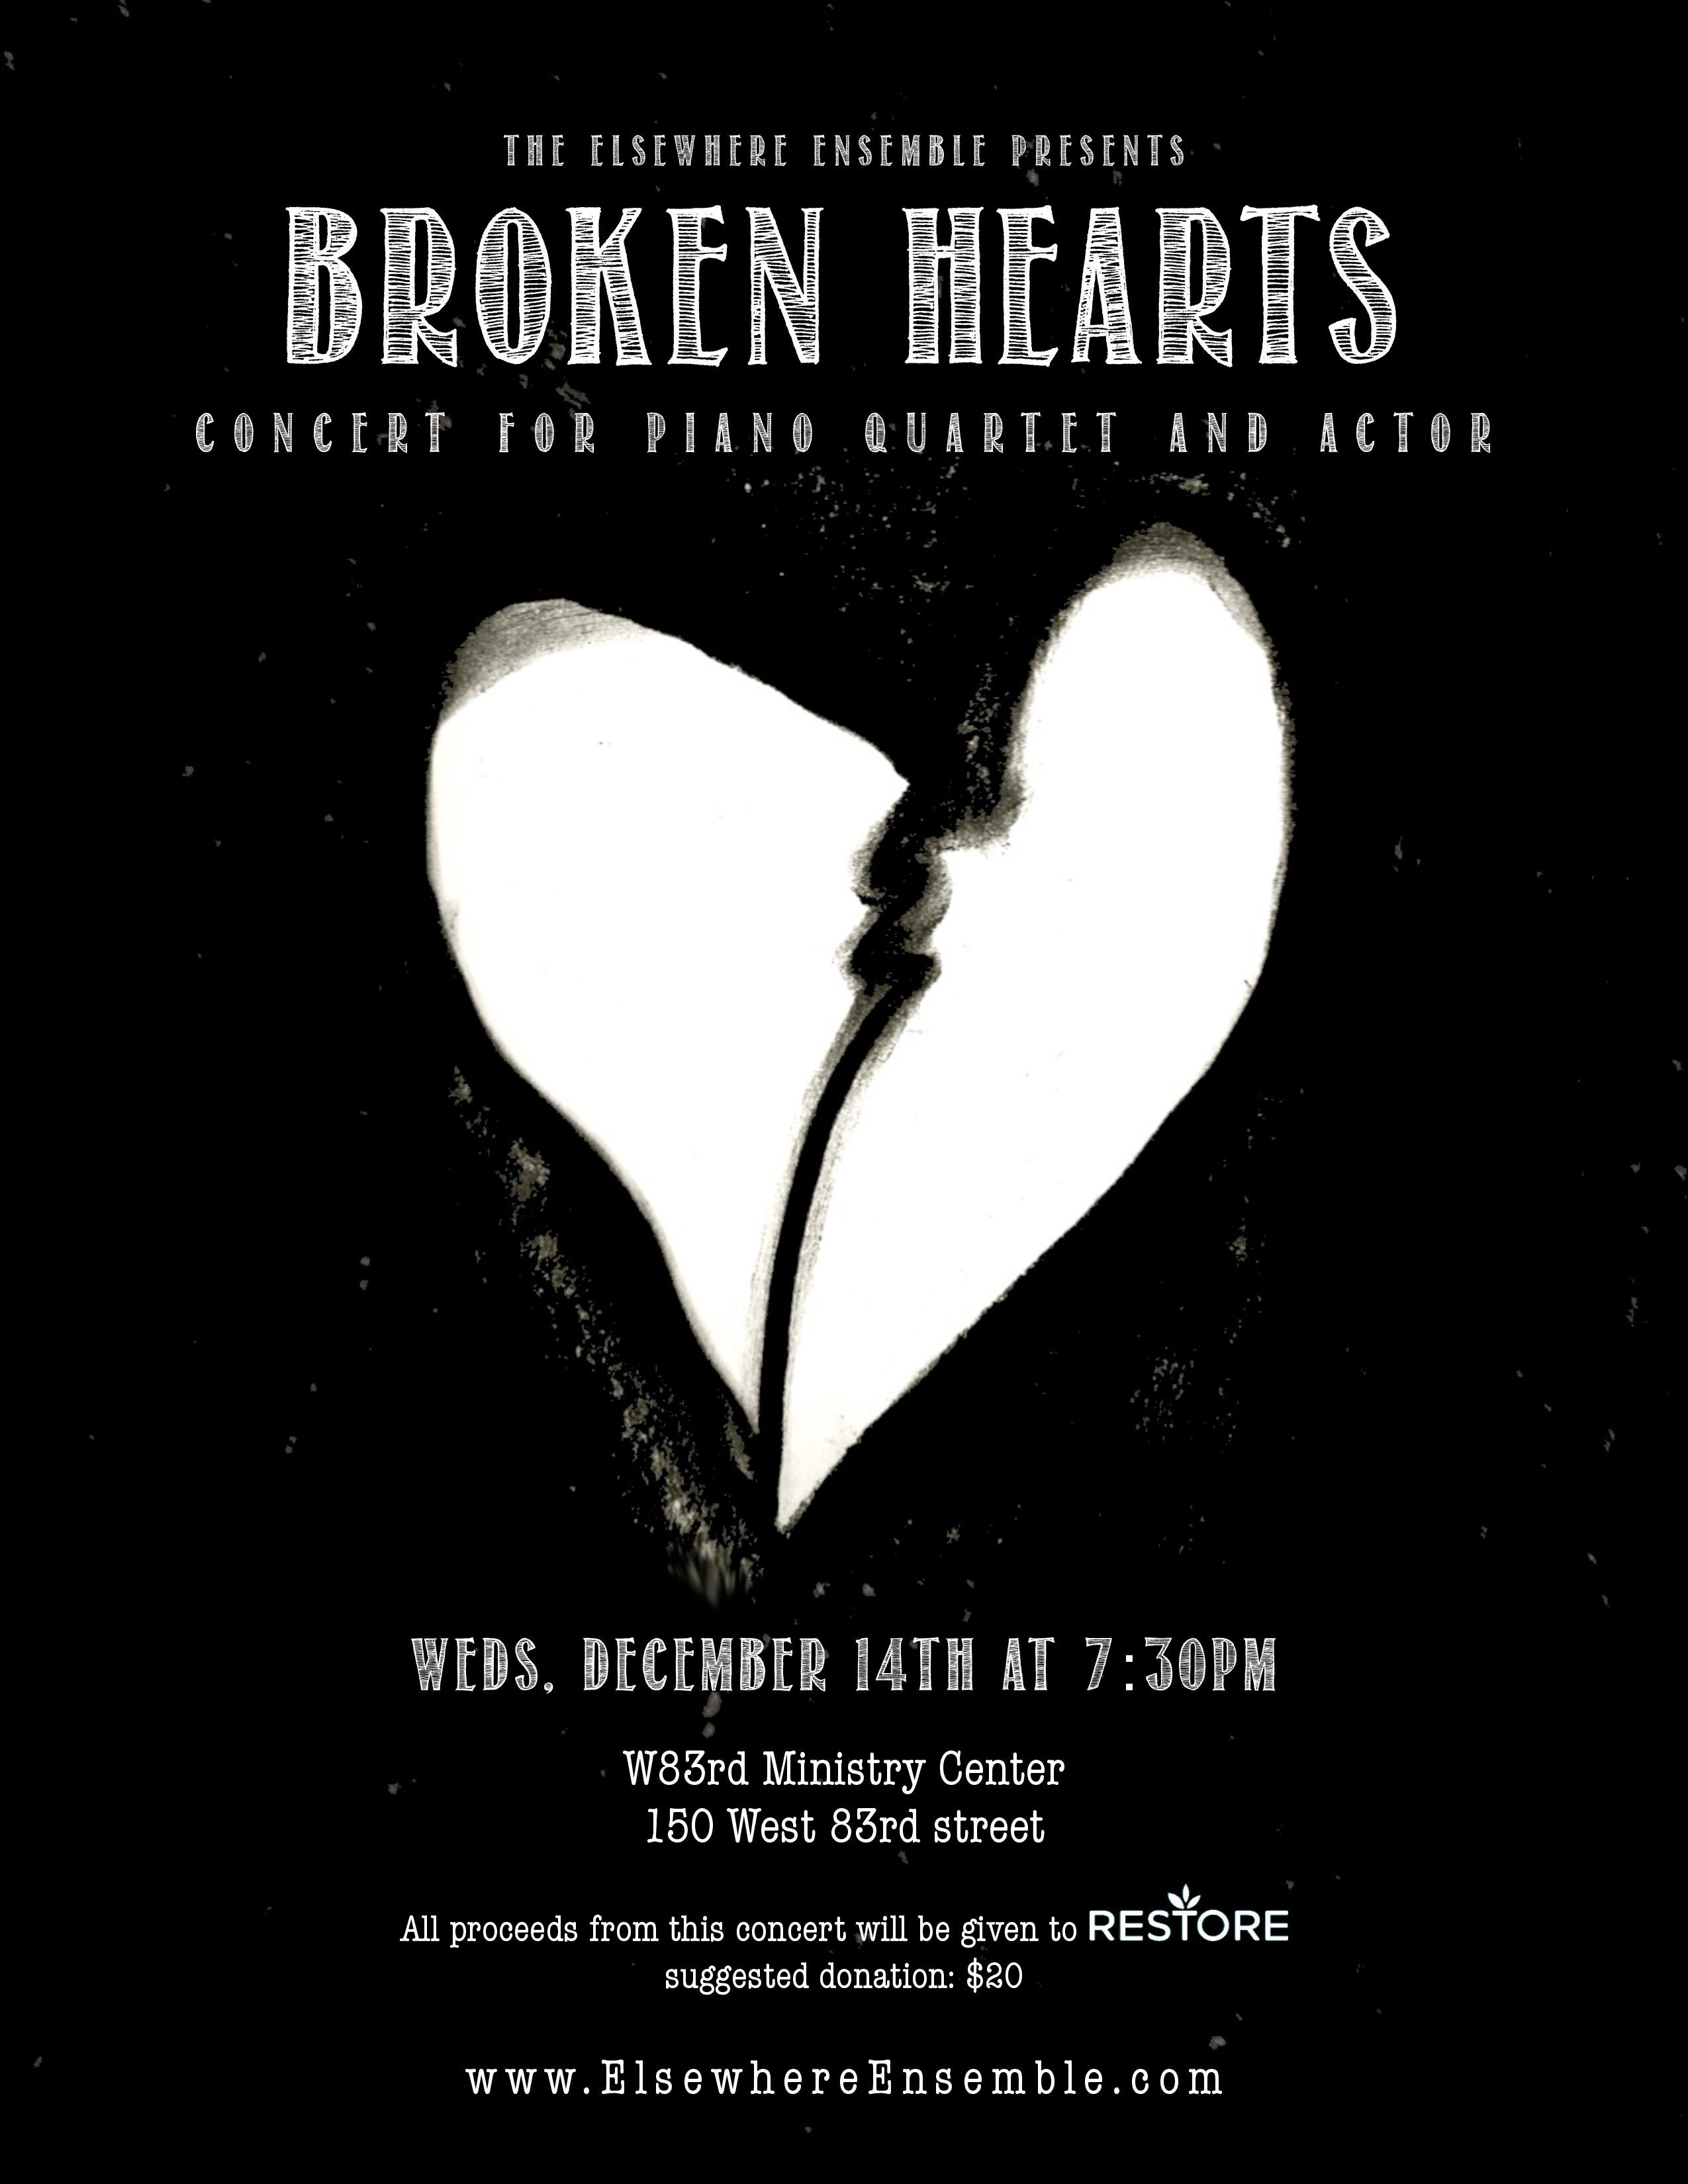 Broken Hearts flyer 1